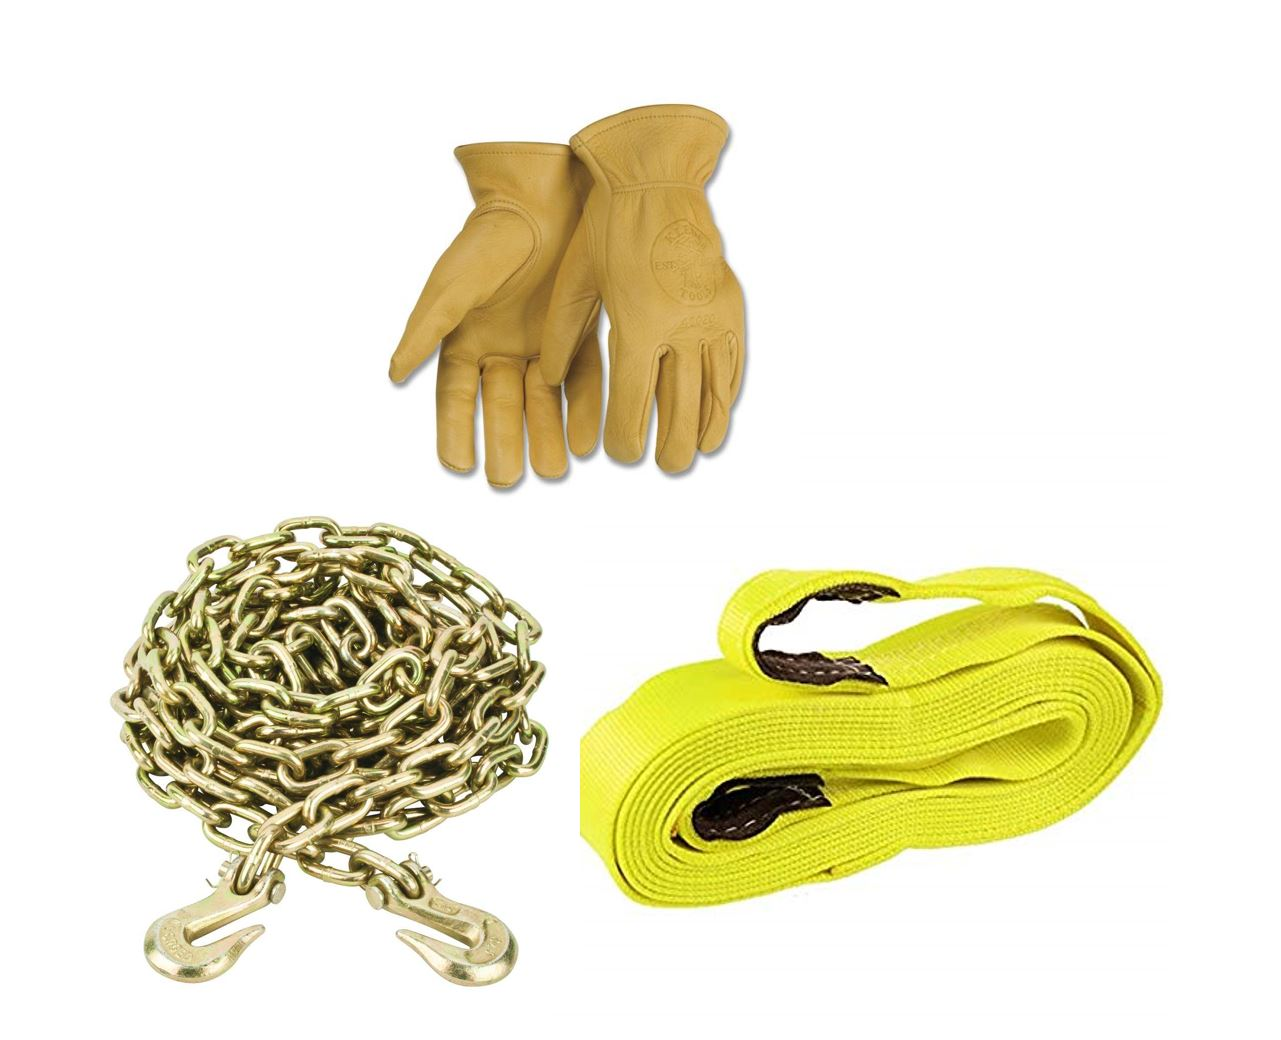 Take your gloves chains, straps and more…